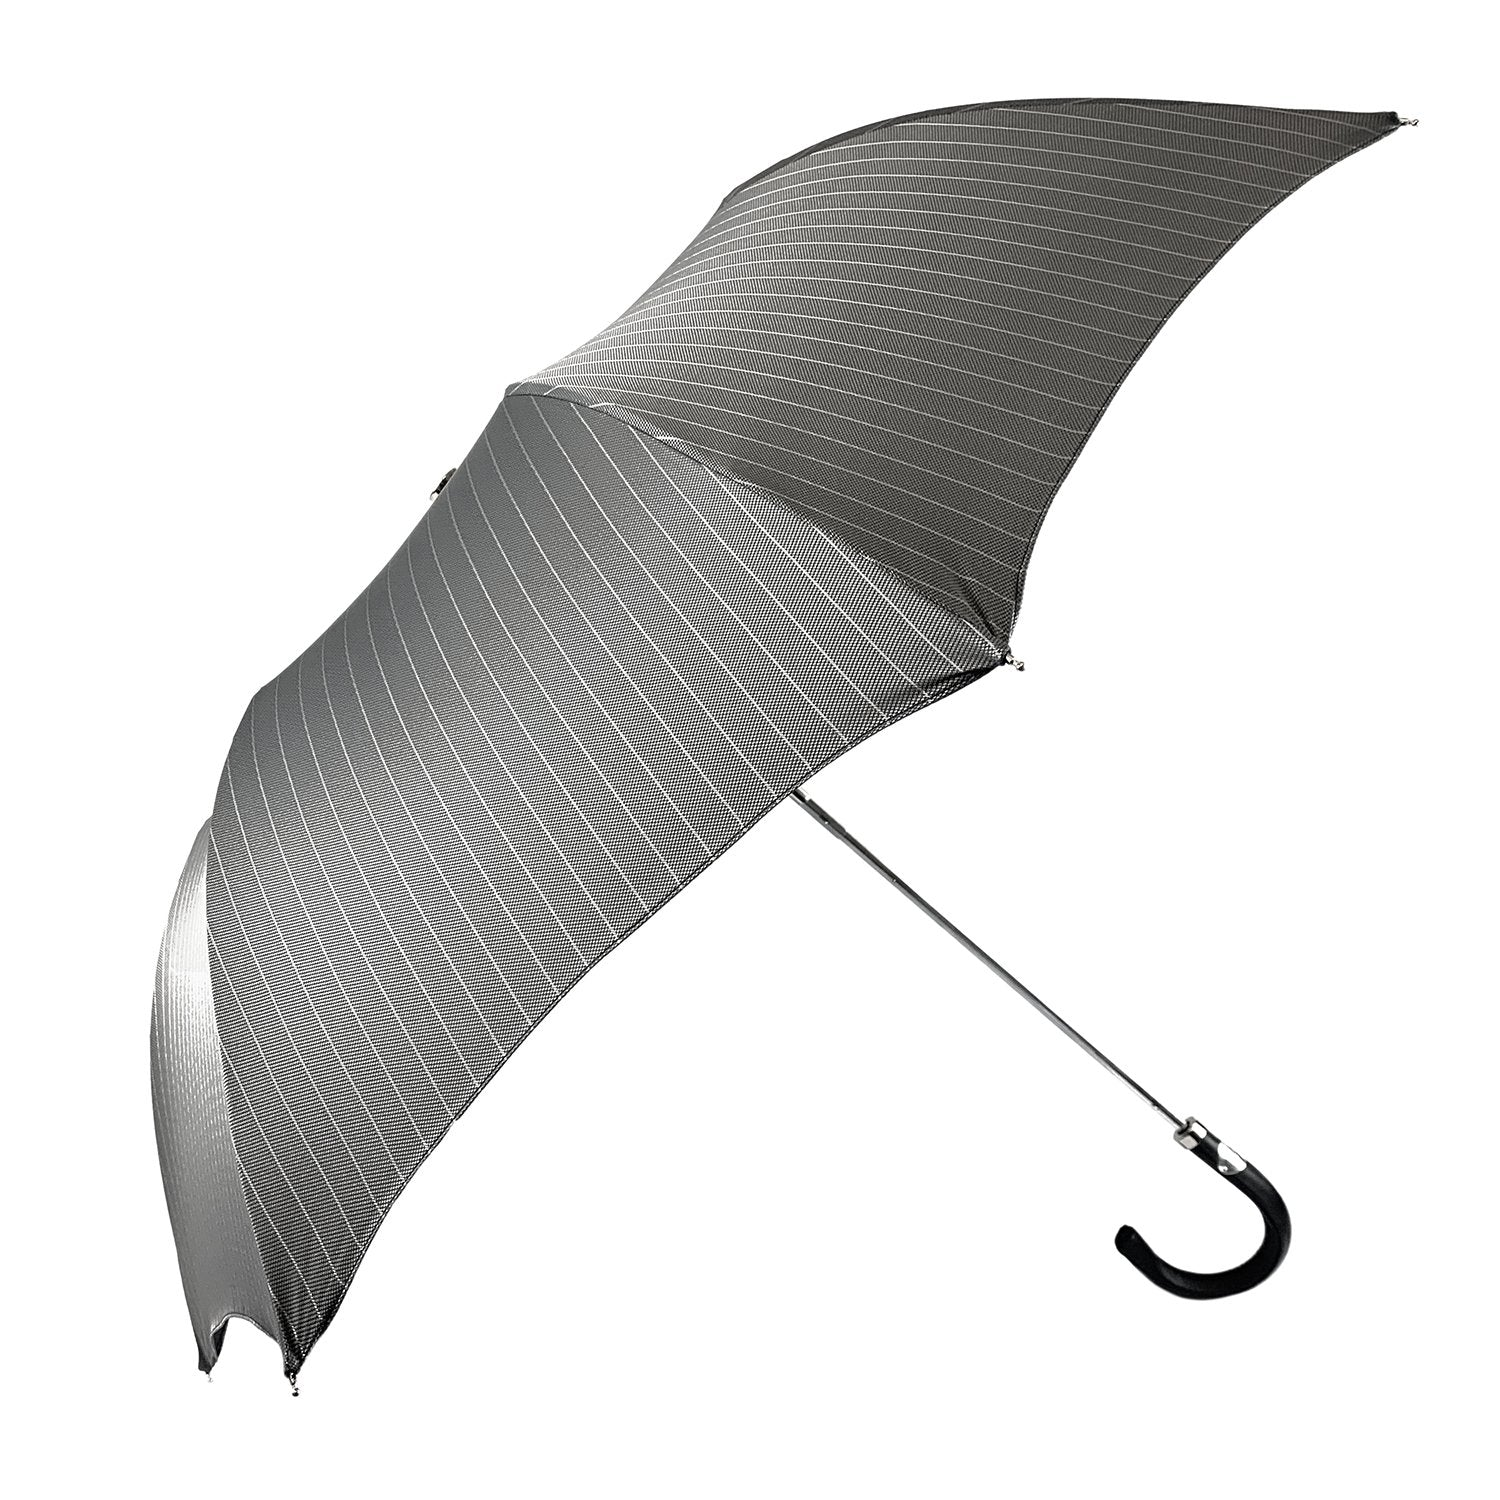 Folding gray striped umbrella for men - IL MARCHESATO LUXURY UMBRELLAS, CANES AND SHOEHORNS